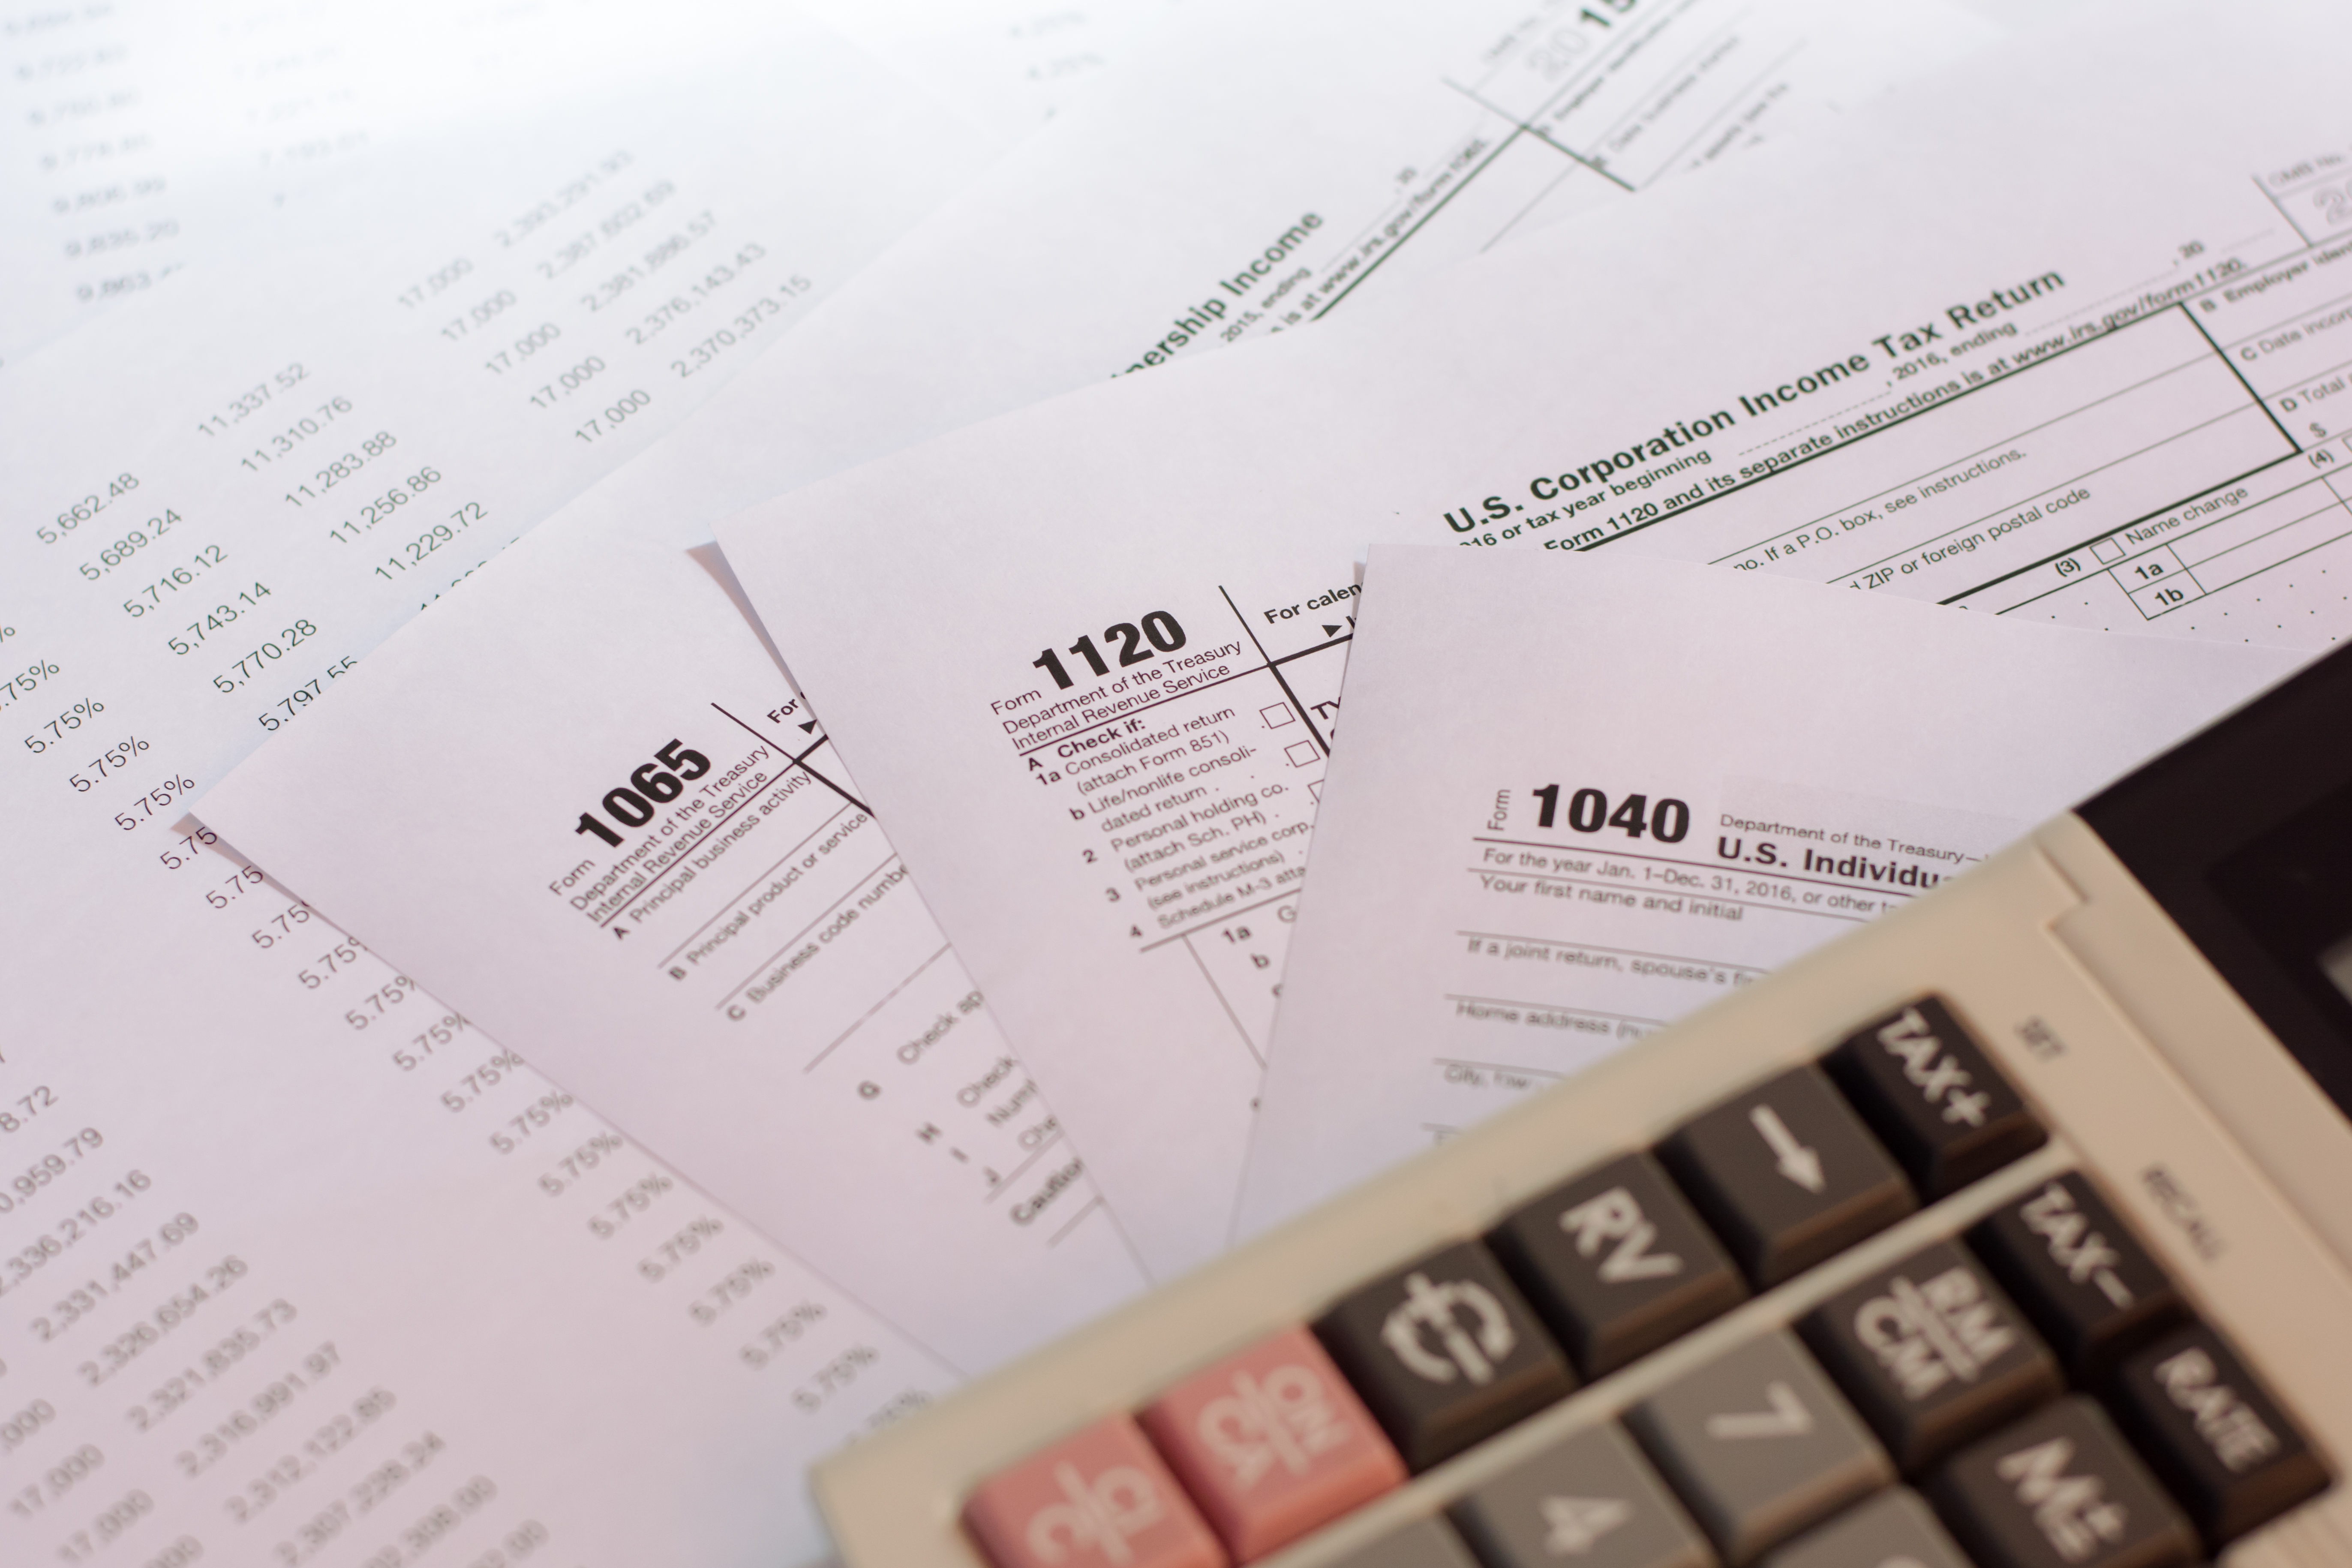 The Irs Protecting Your Identity And Tax Refund Tax Planning For